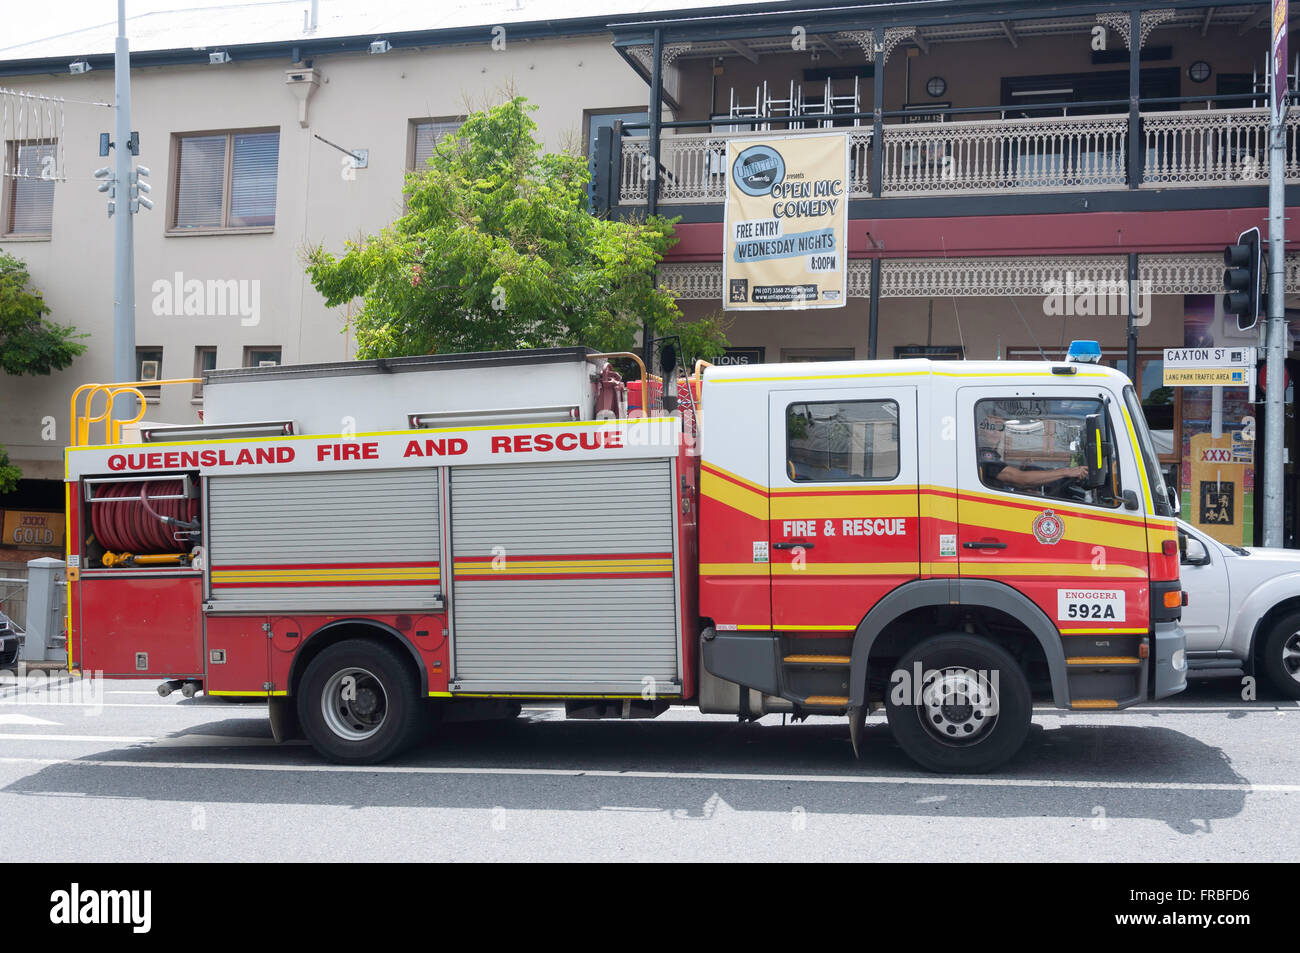 Queensland Fire and Rescue engine on call, Caxton Street, Paddington, Brisbane, Queensland, Australia - Stock Image